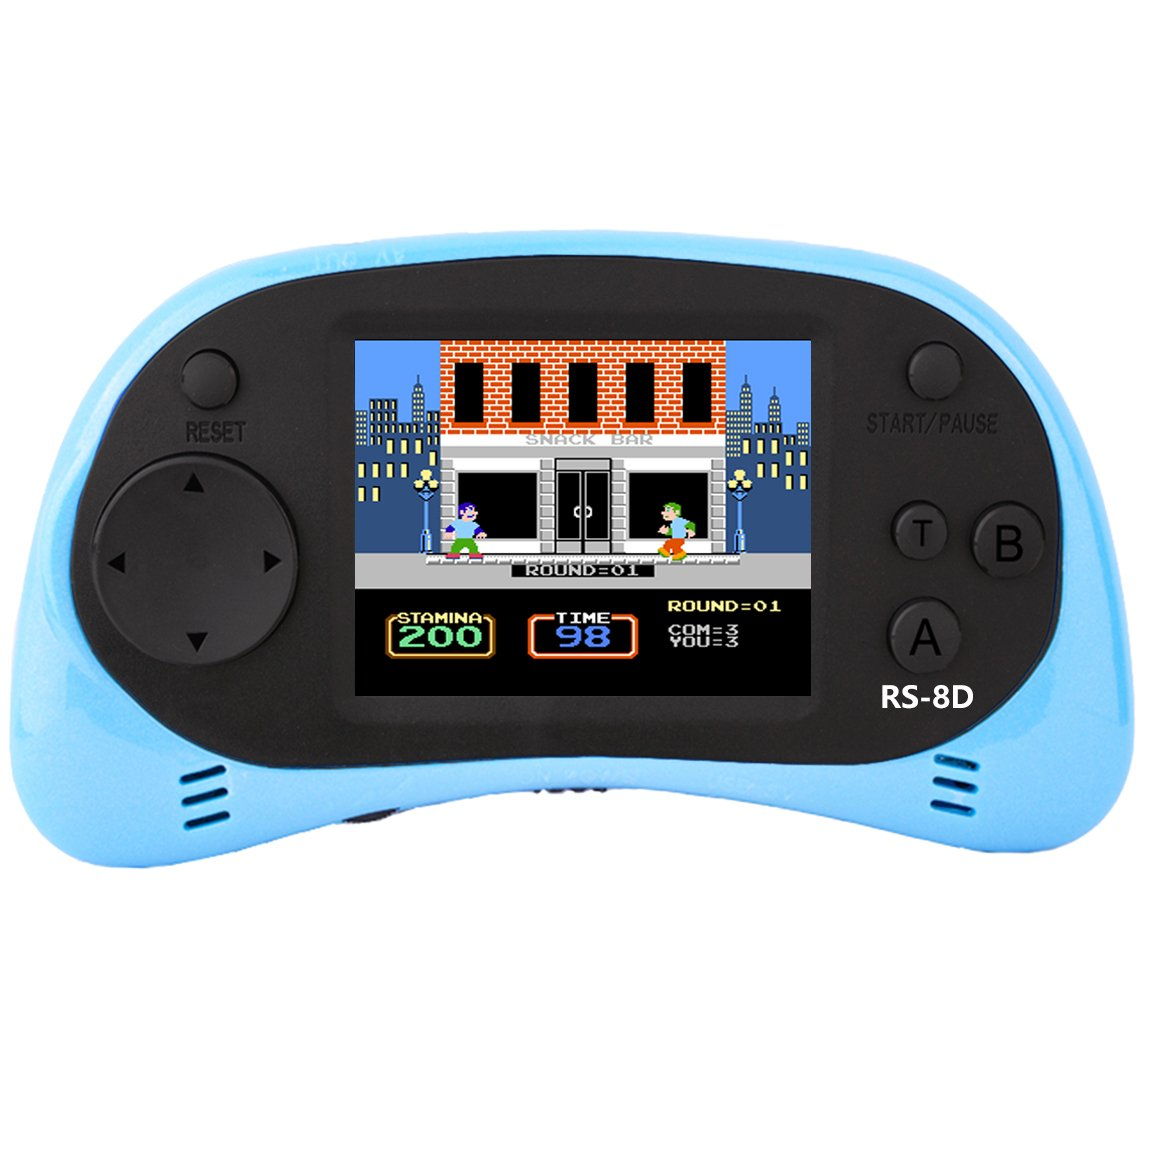 Kids Retro Handheld Games Console & TV Game Controller Built-in 260 Classic Old Style Video Games with 2.5'' Color LCD Screen Portable Arcade Gaming System Birthday Present for Children (Light Blue)